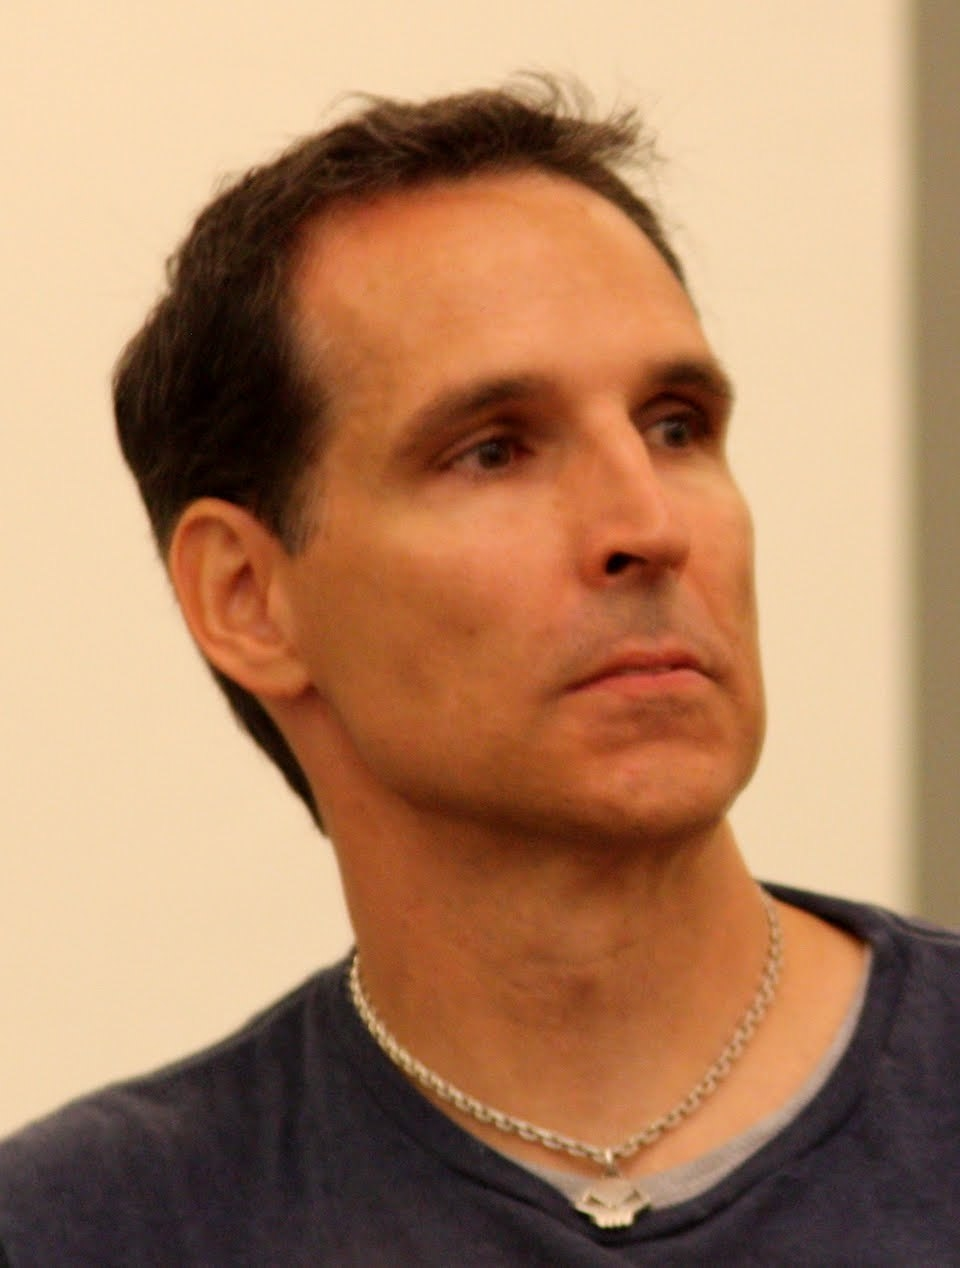 Todd McFarlane Net Worth